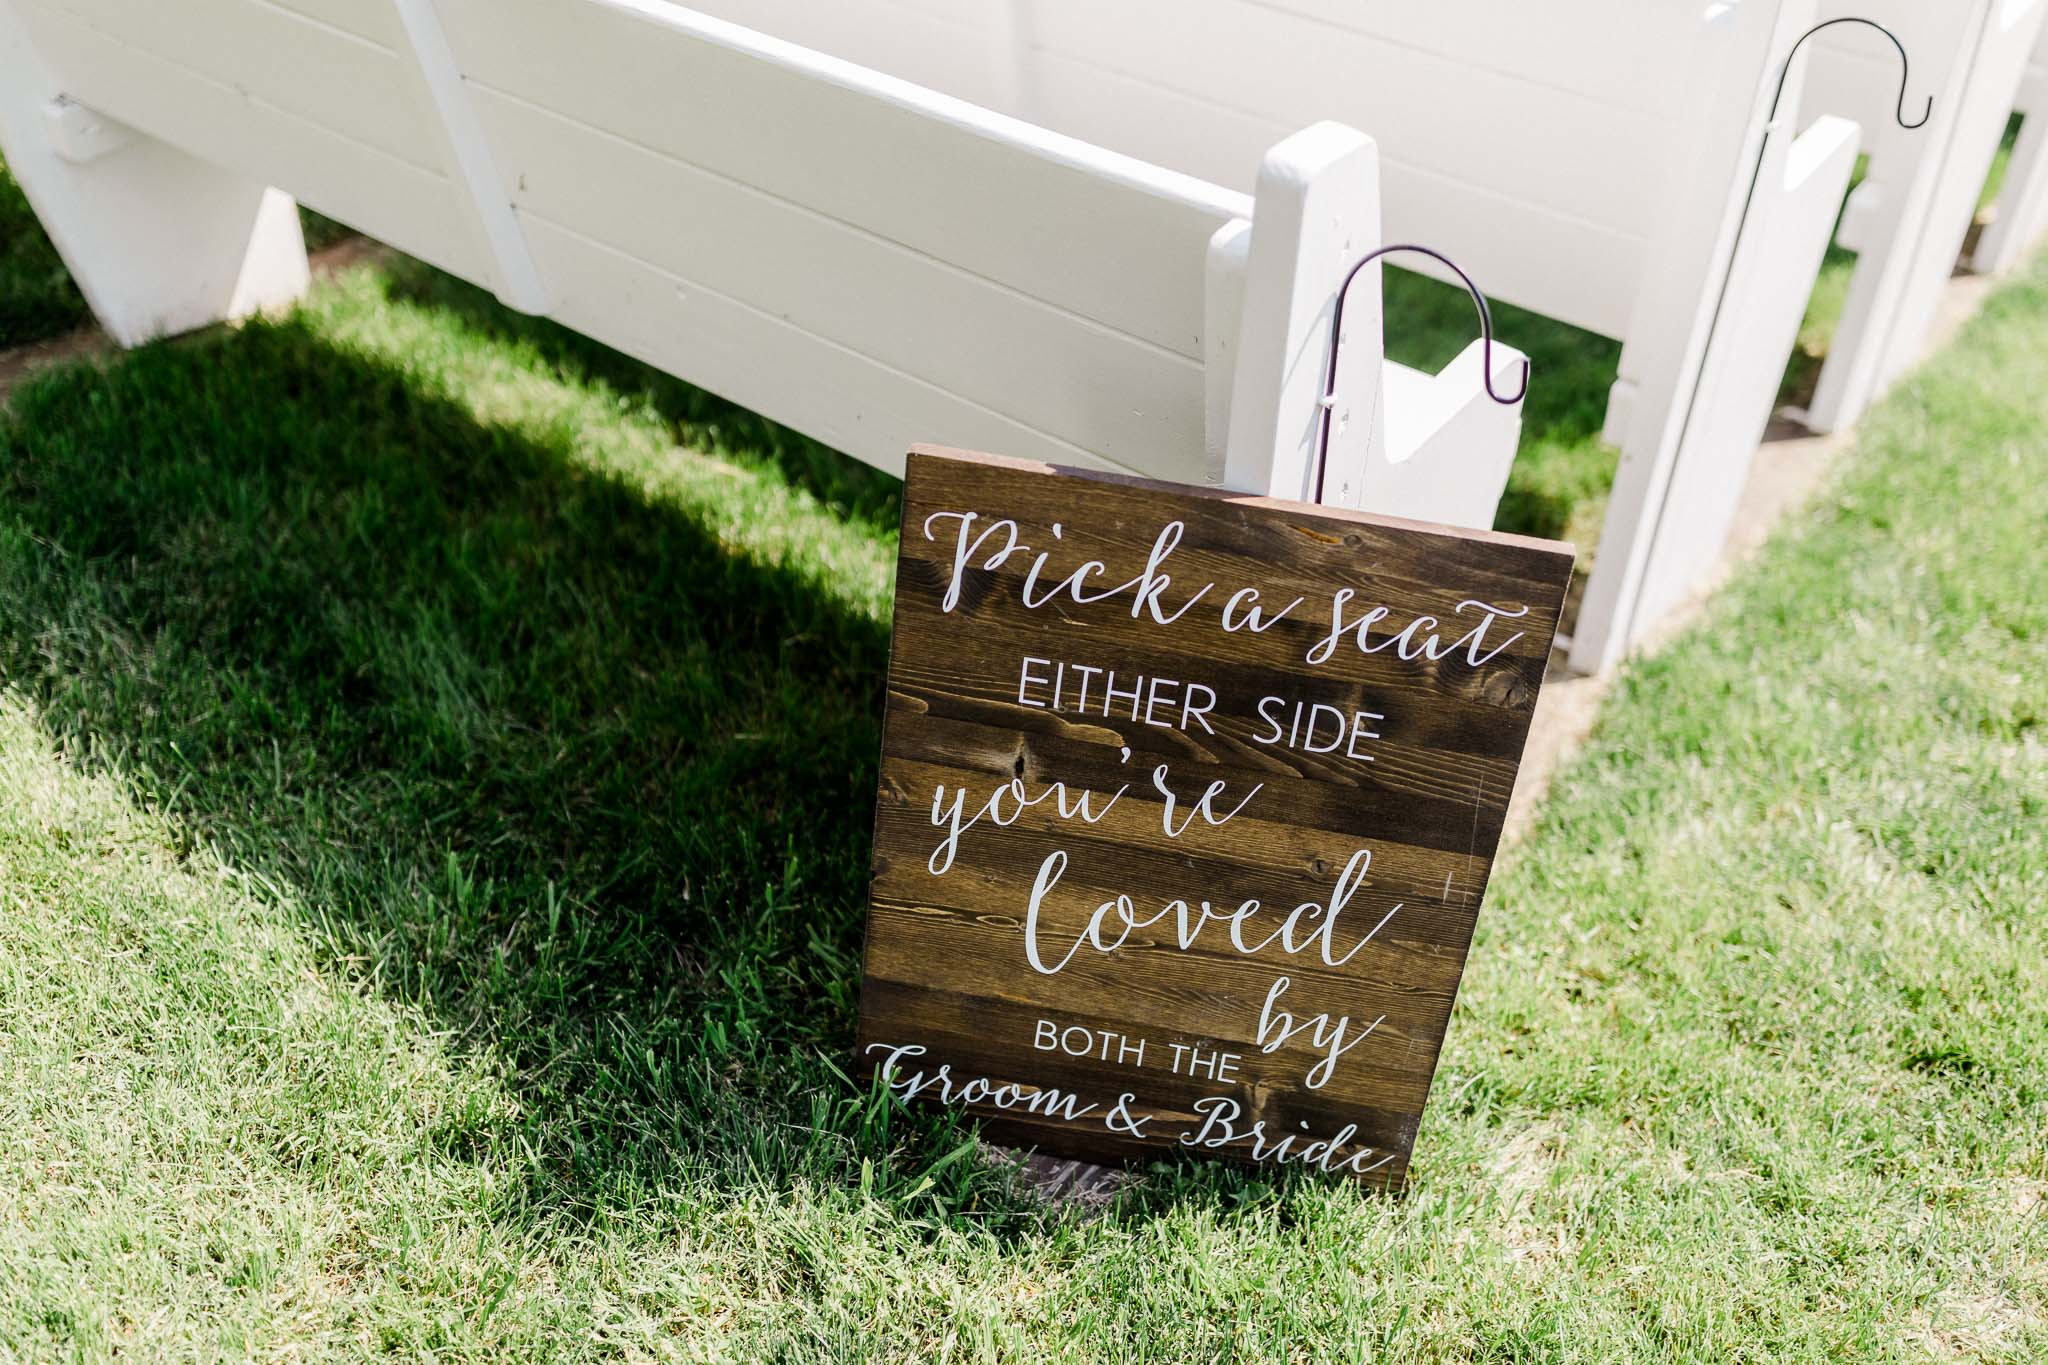 Bramblewood_Farm_Pittsburgh-wedding-6348.jpg